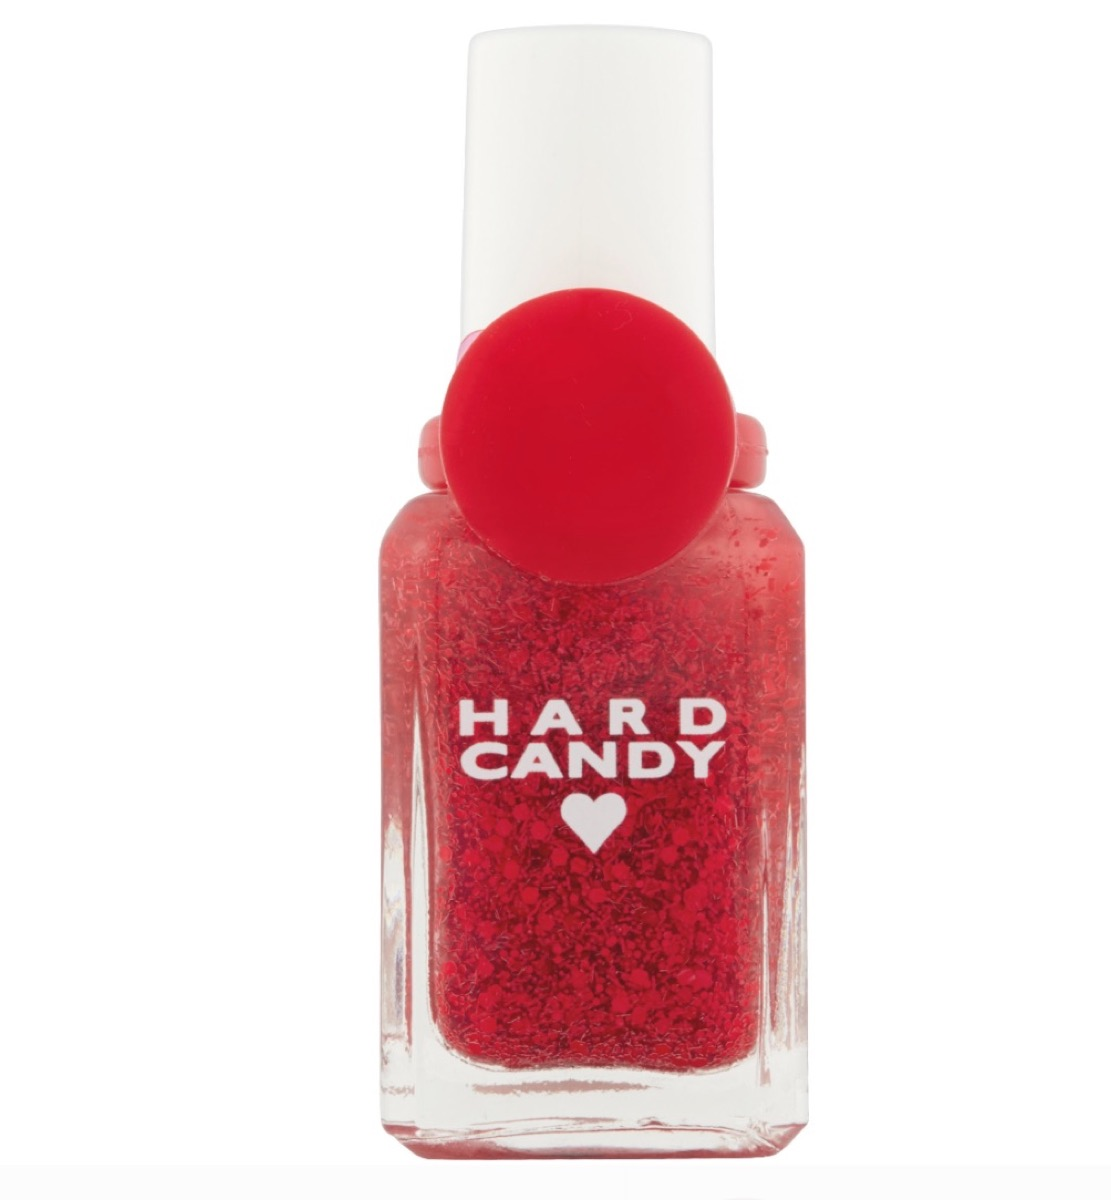 hard candy nail polish, things only 90s kids remember